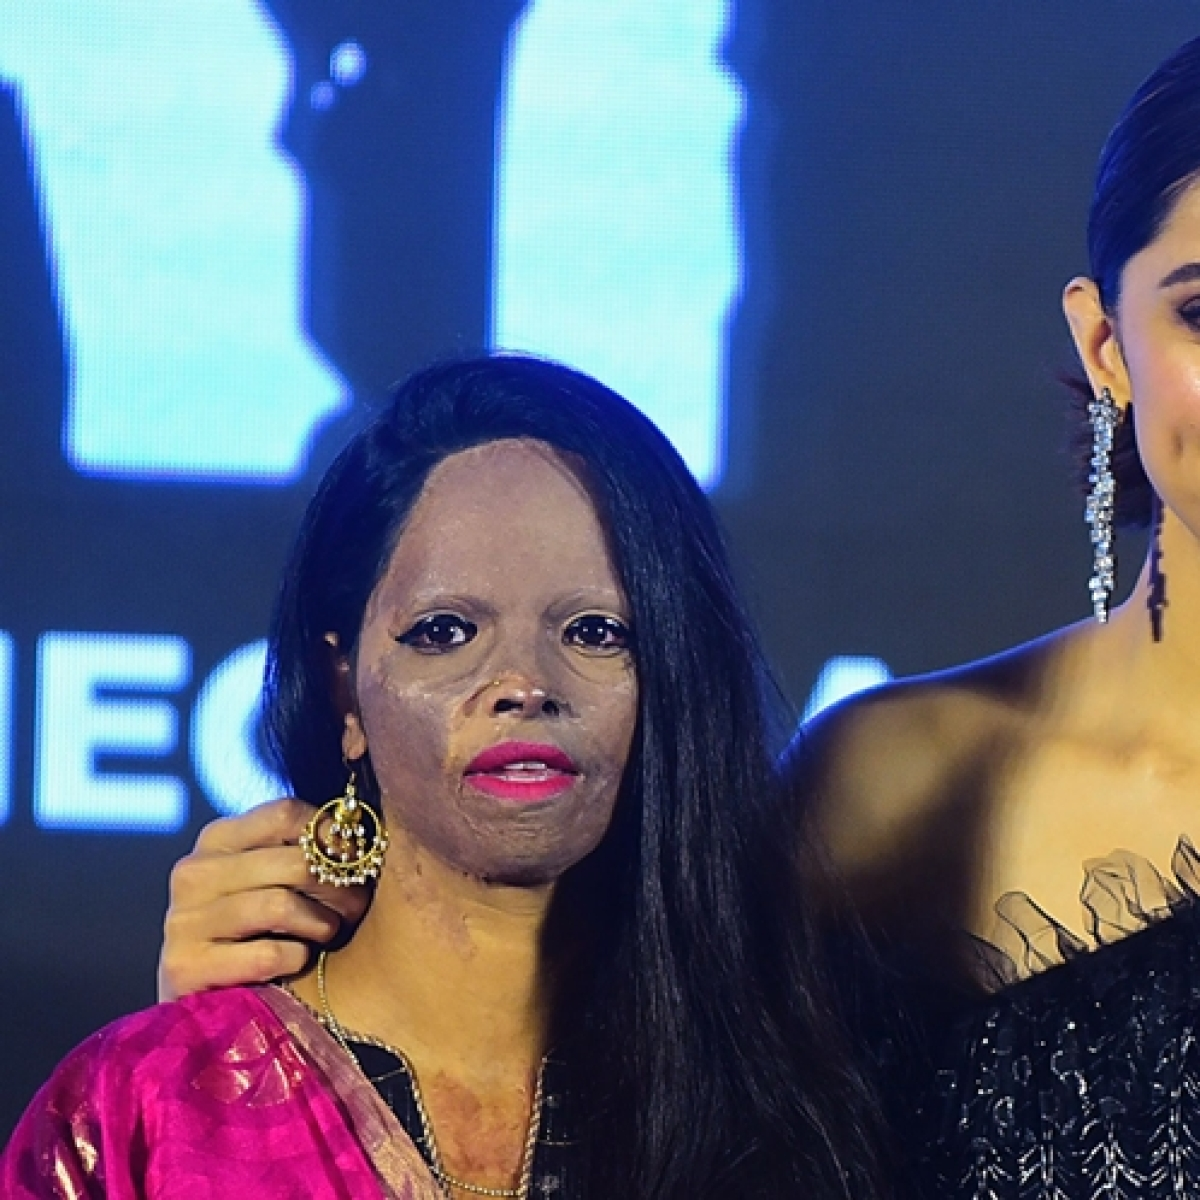 Gave credit to lawyer in Indian release of Chhapaak: Fox Star to Delhi HC